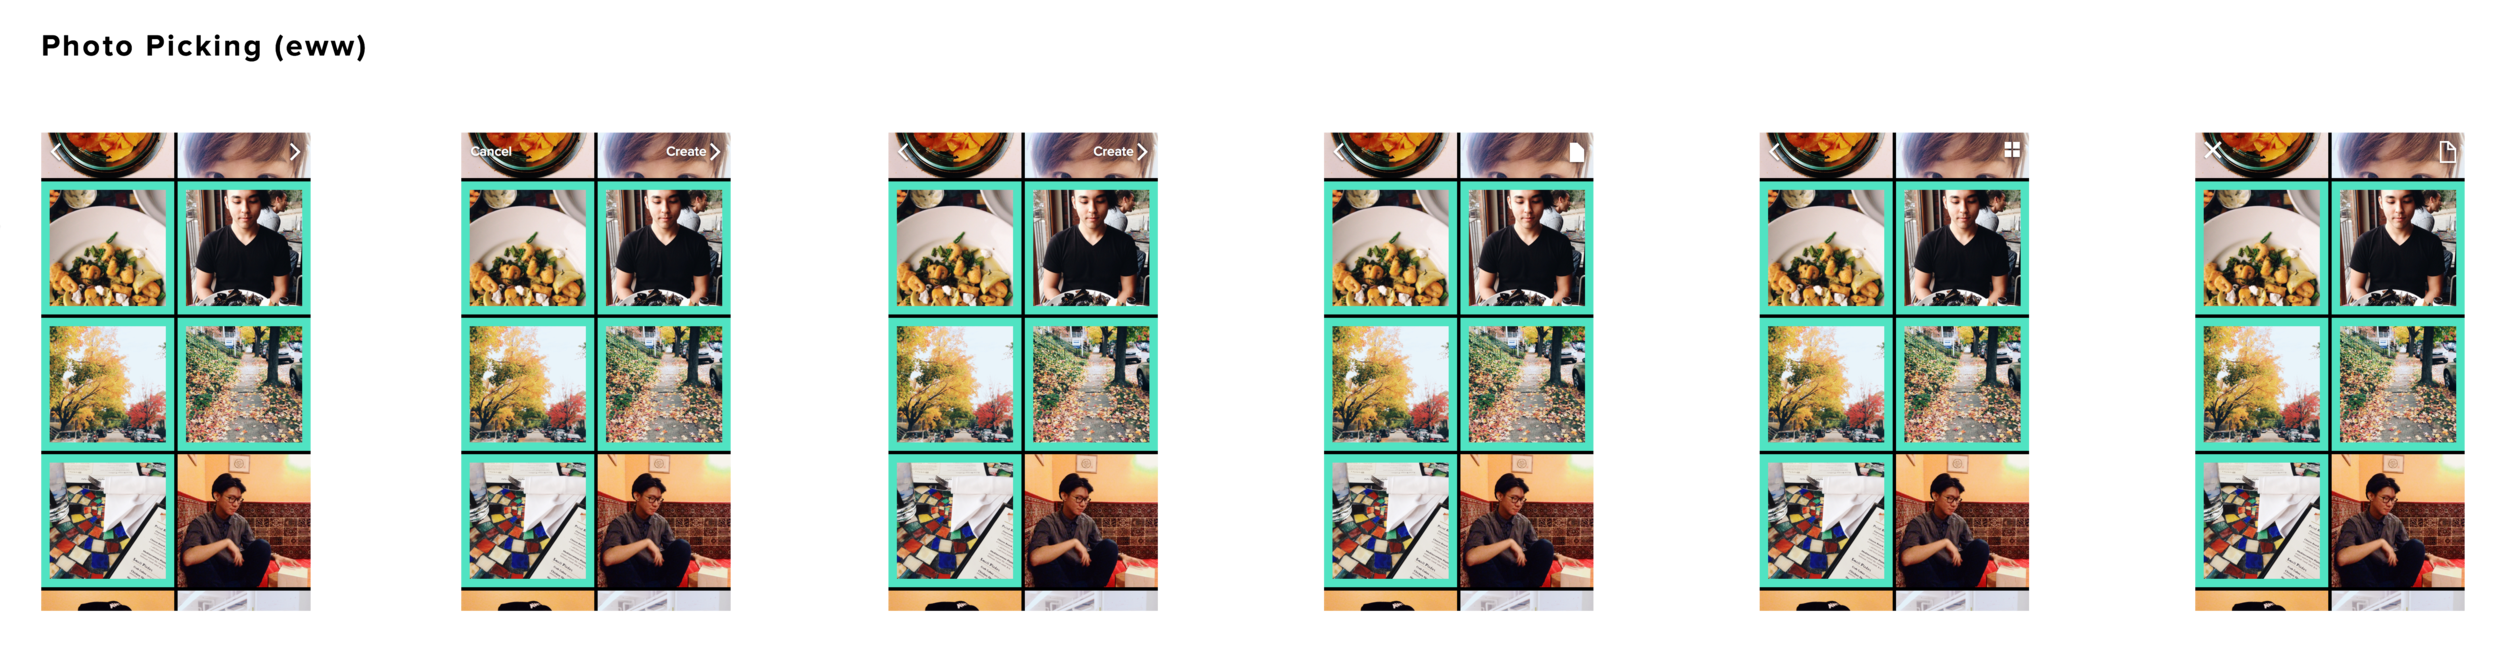 testing out different icons for the photo picking stage of creation